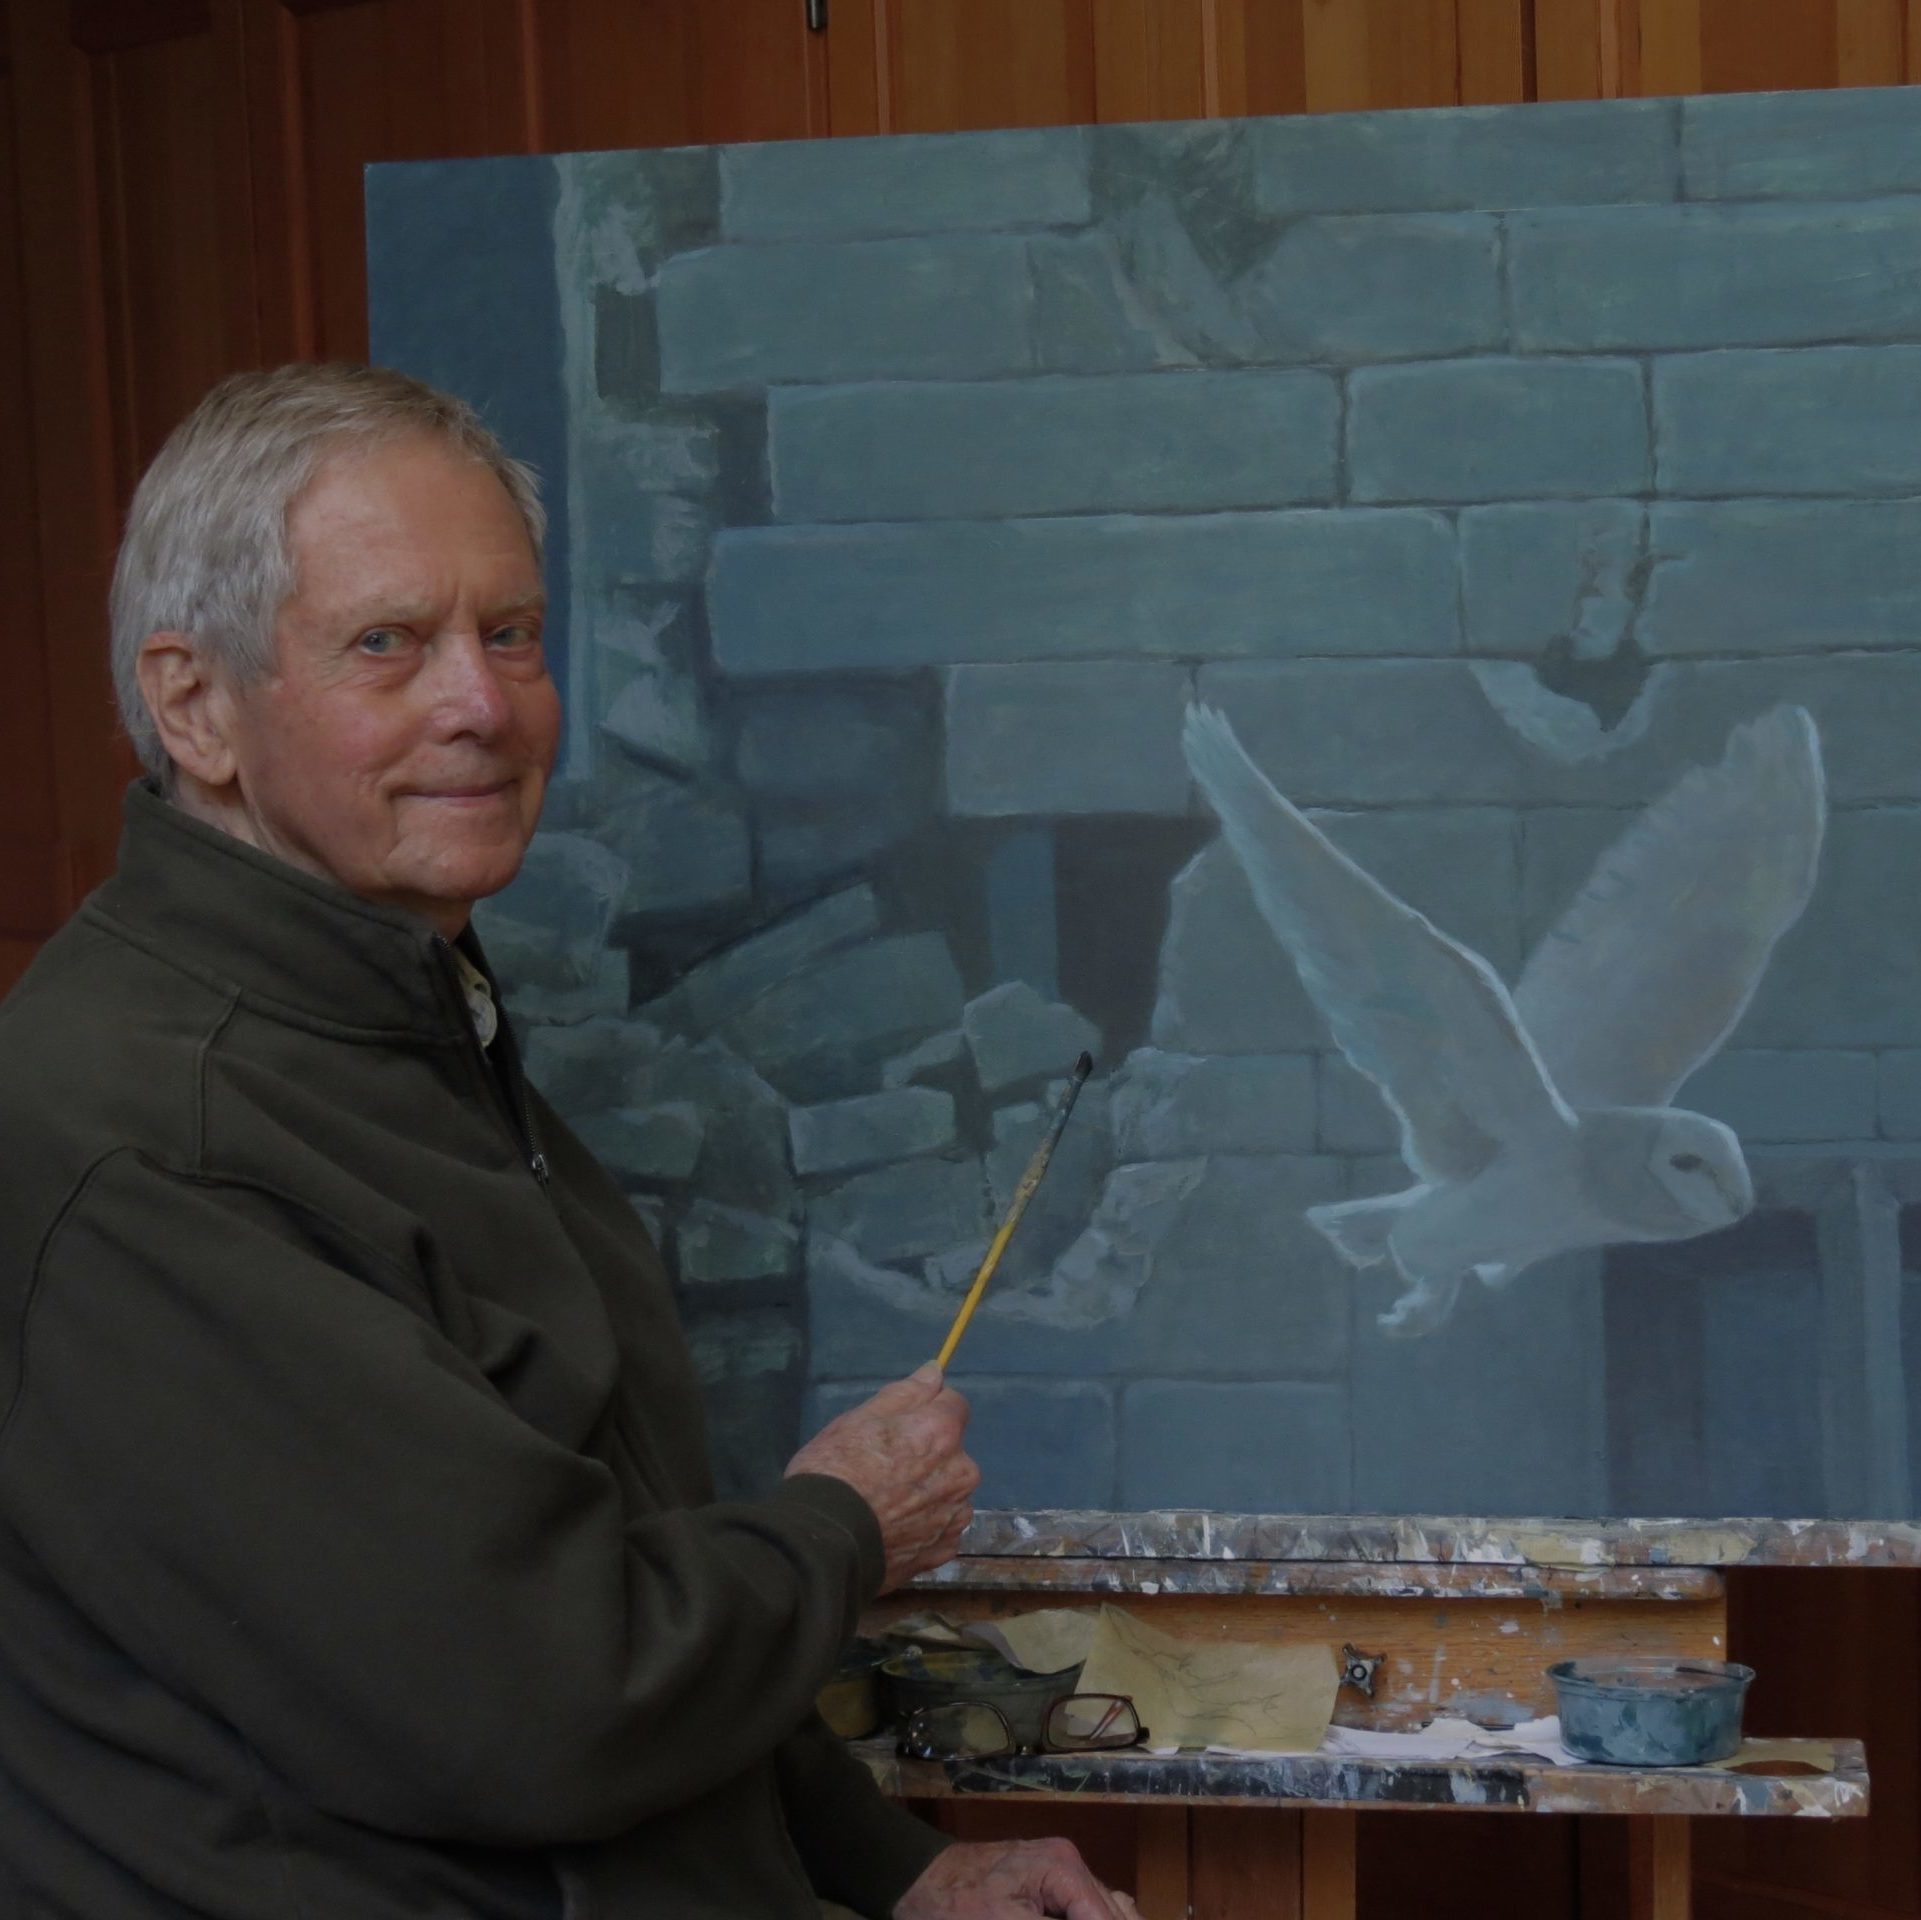 Robert Bateman, Barn Owl at Biddulph Old Hall